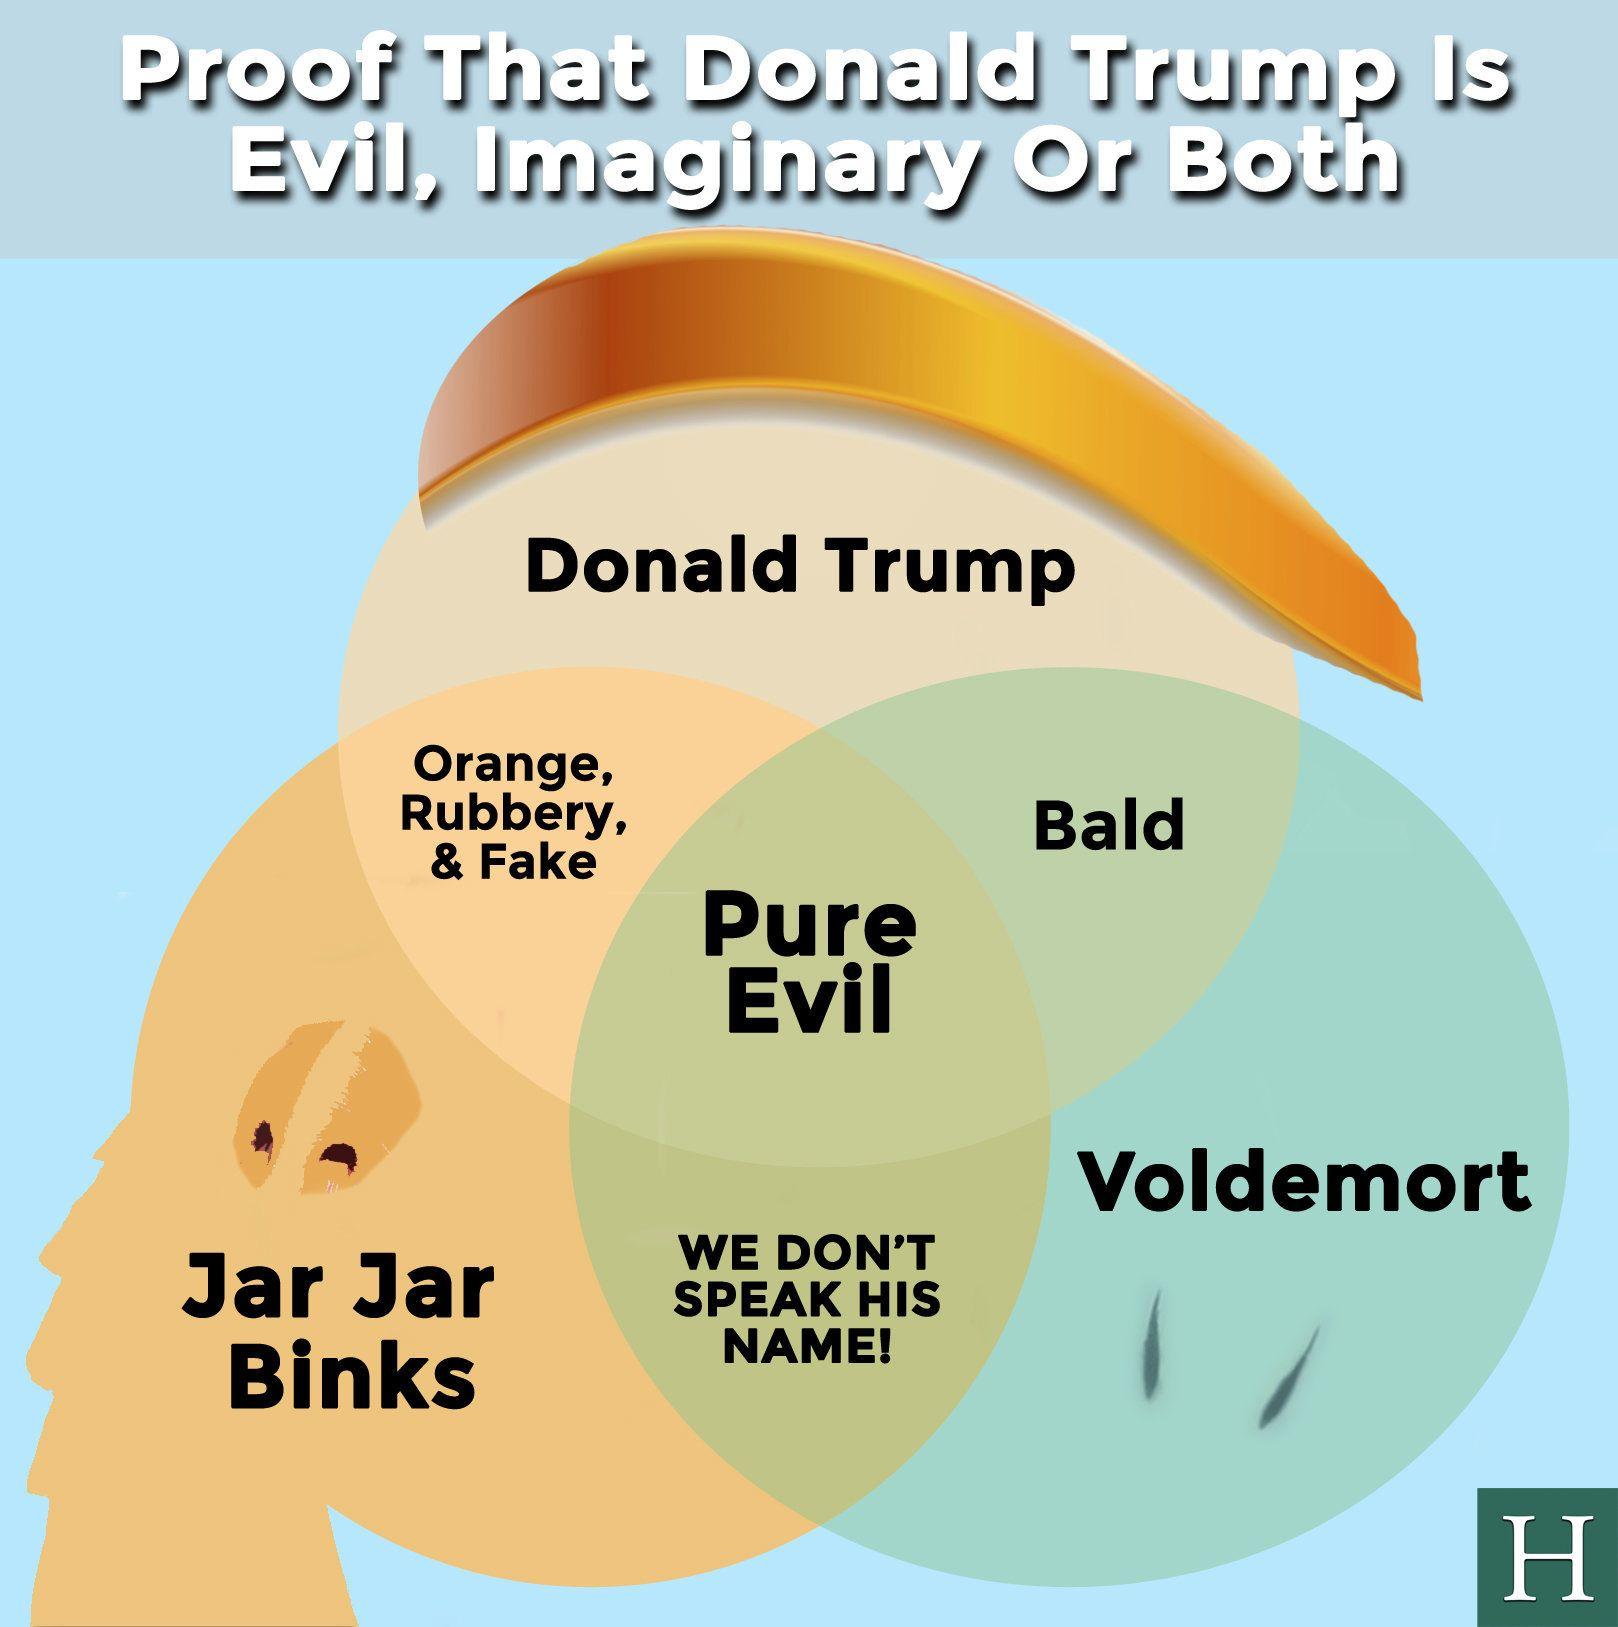 this venn diagram is proof that donald trump is evil